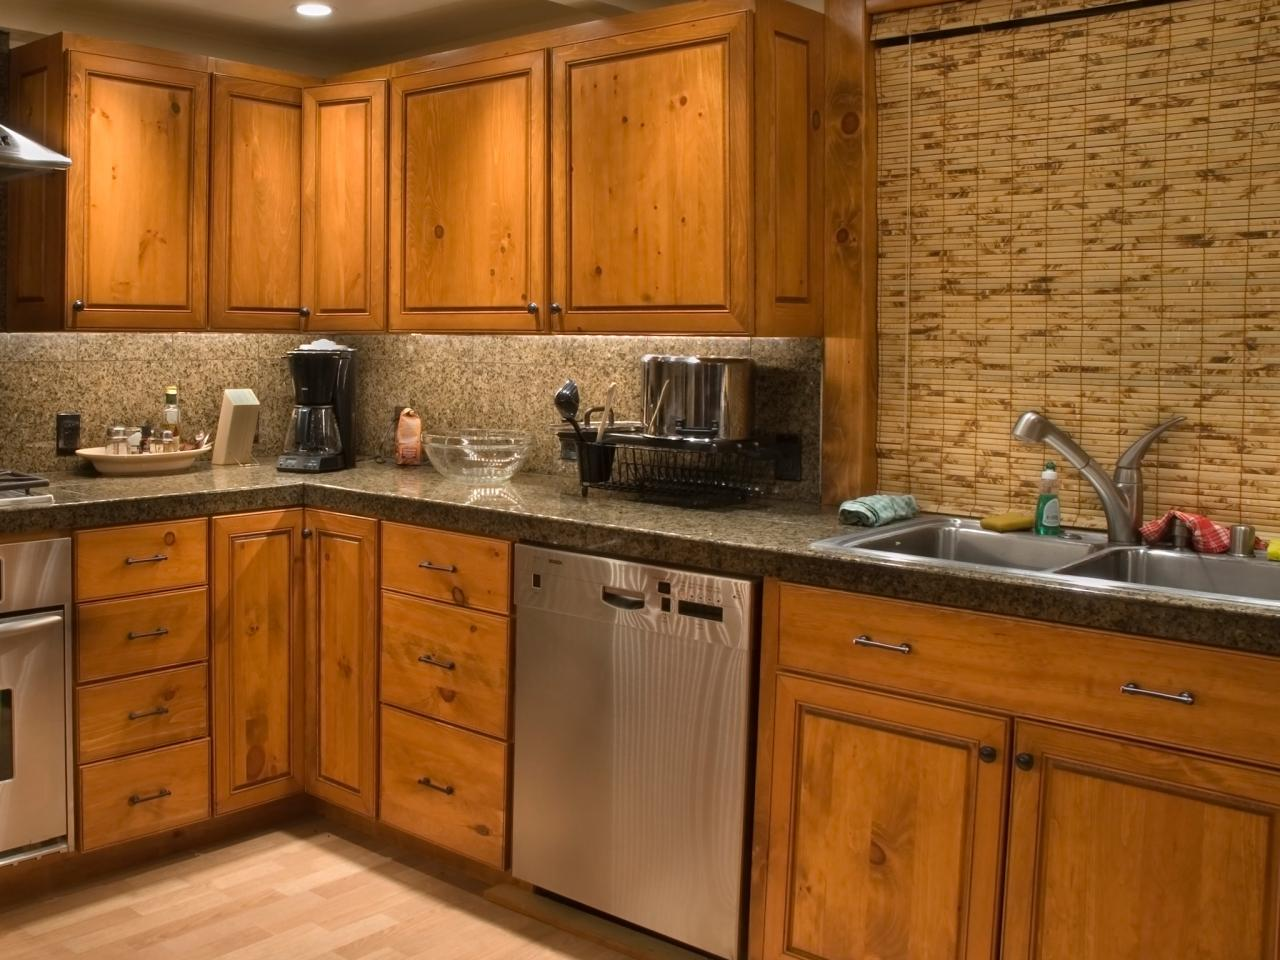 Diamond cabinets door styles finishes and specifications - Medallion Cabinets Spec Book Thomasville Kitchen Cabinet Reviews Thomasville Cabinets